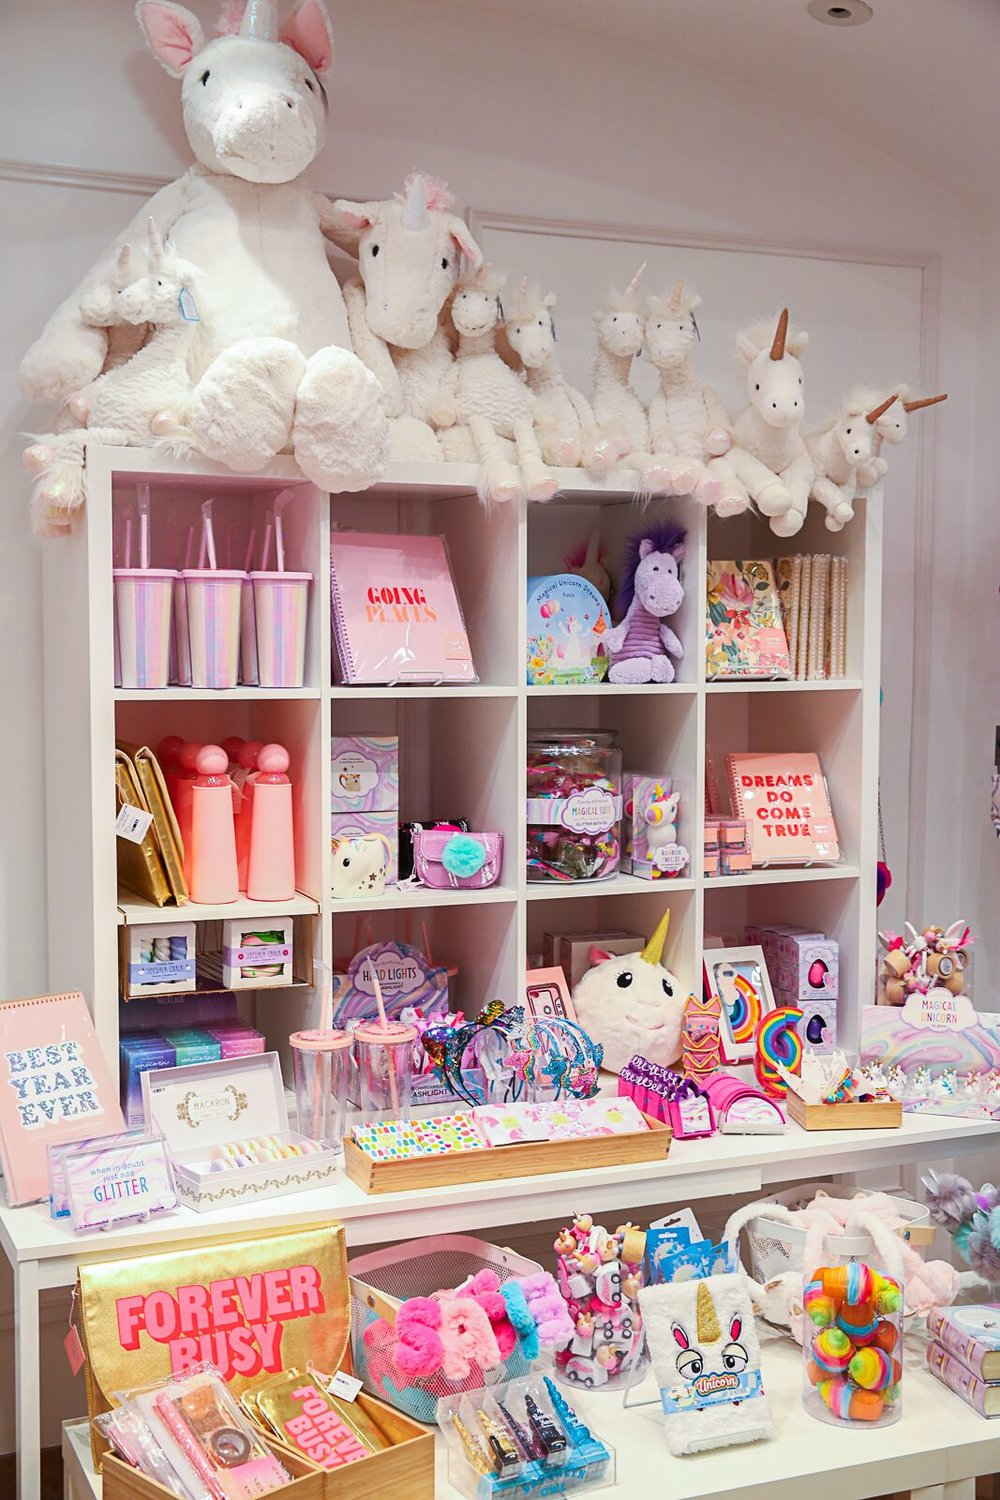 AN ABSOLUTE MUST:OUR UNICORN ROOM - ALL THINGS UNICORN FOR YOUR LITTLE BELIEVERS